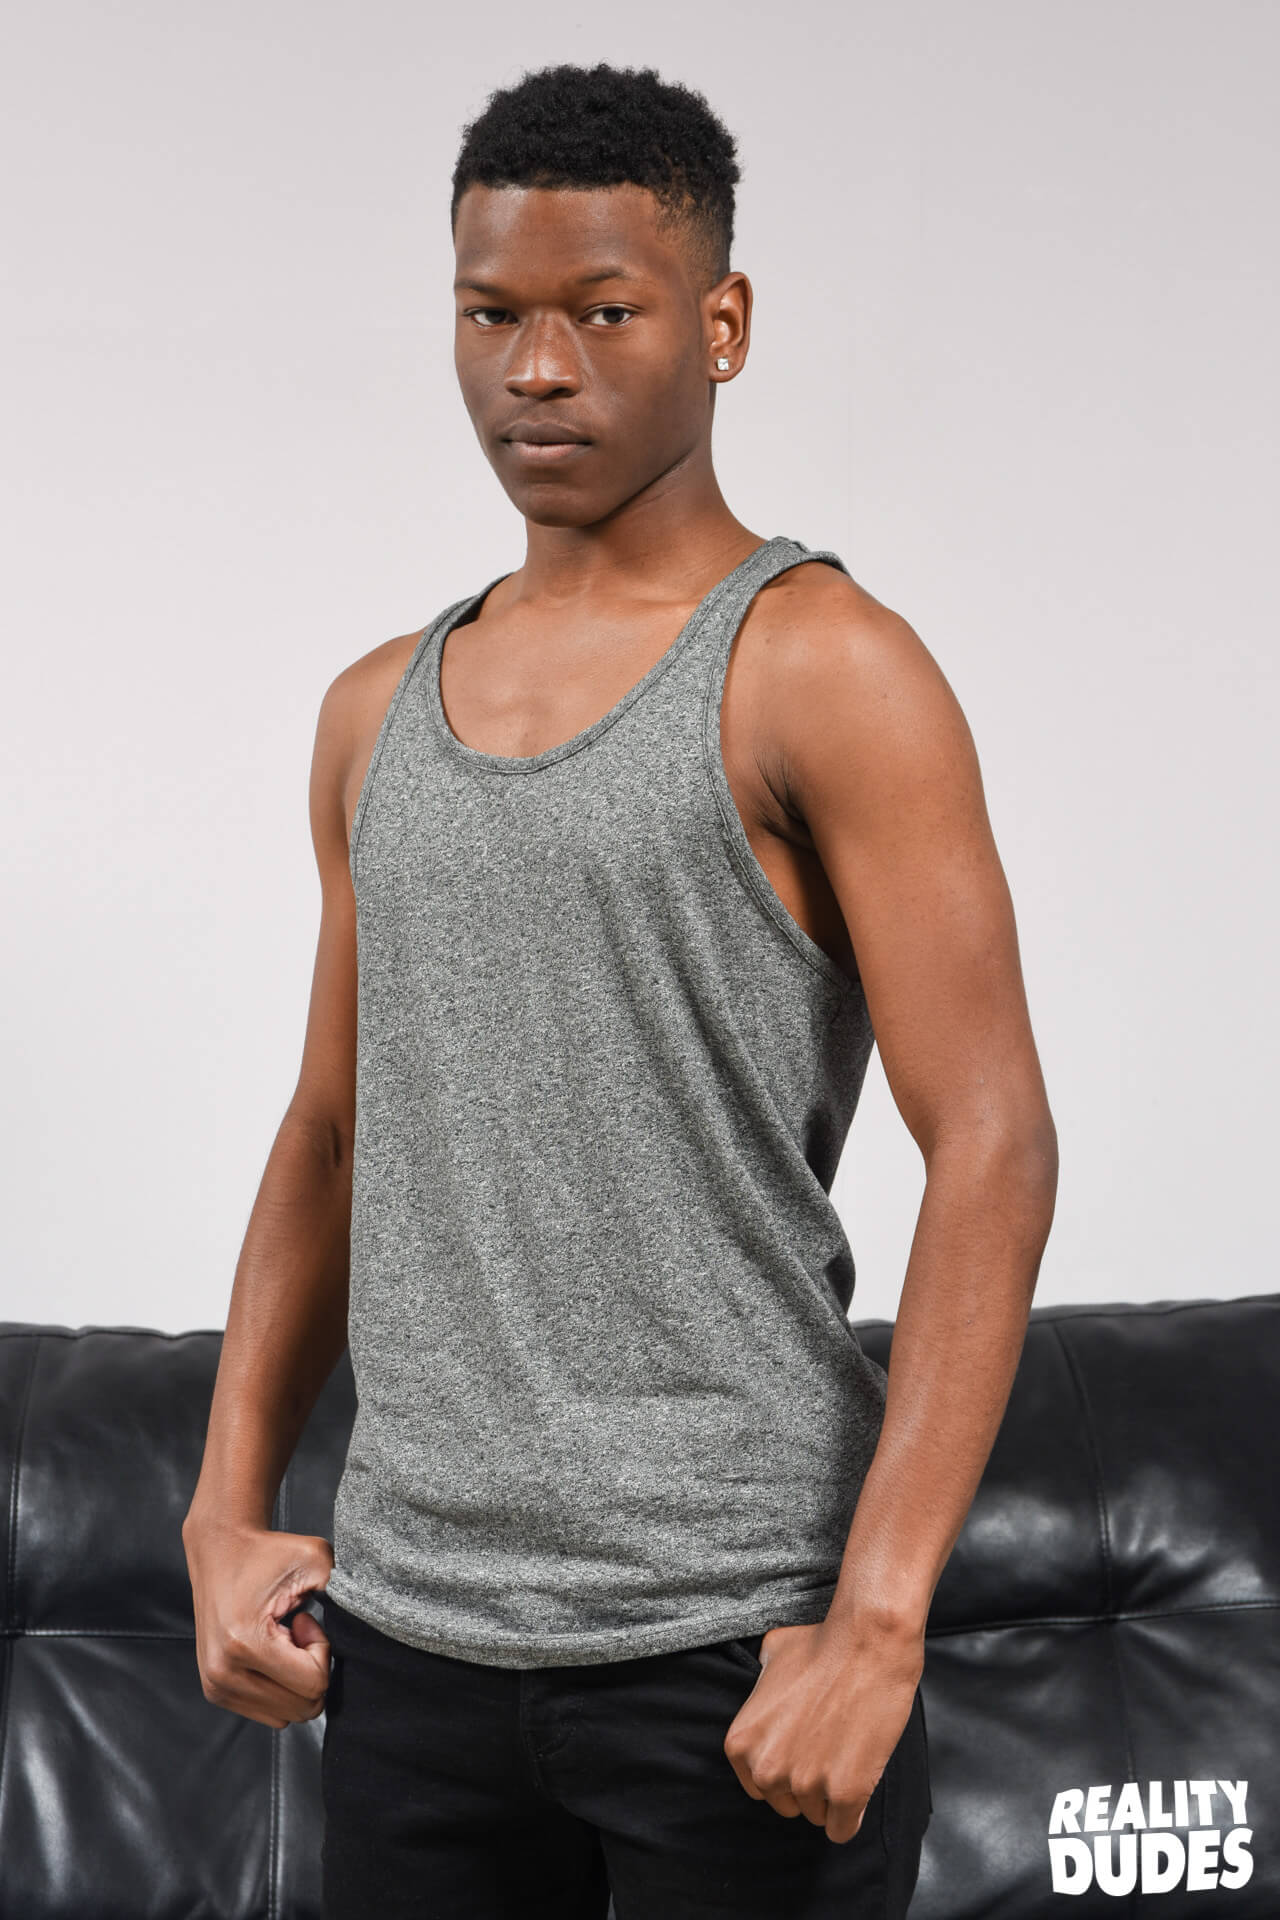 reality dudes reality thugs adonis couverture kylan gay porn blog image 2